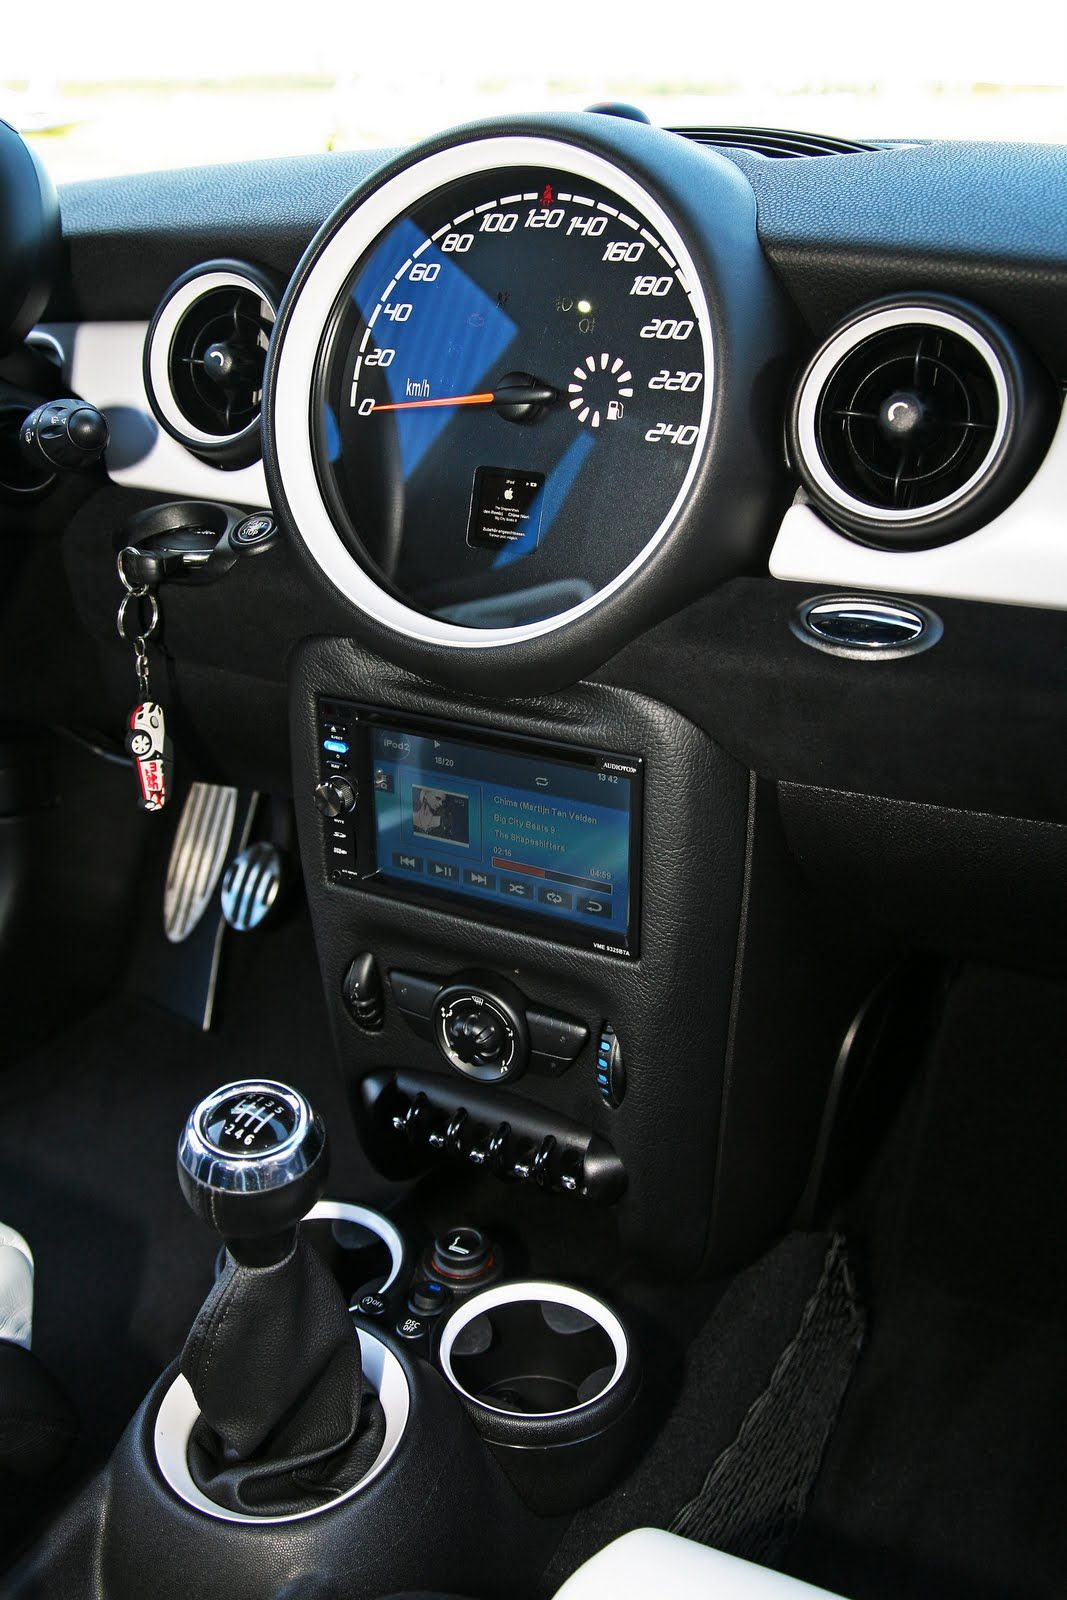 Mini Cooper S Aftermarket Stereo Google Search Cars Mini Cooper S Mini Clubman Mini